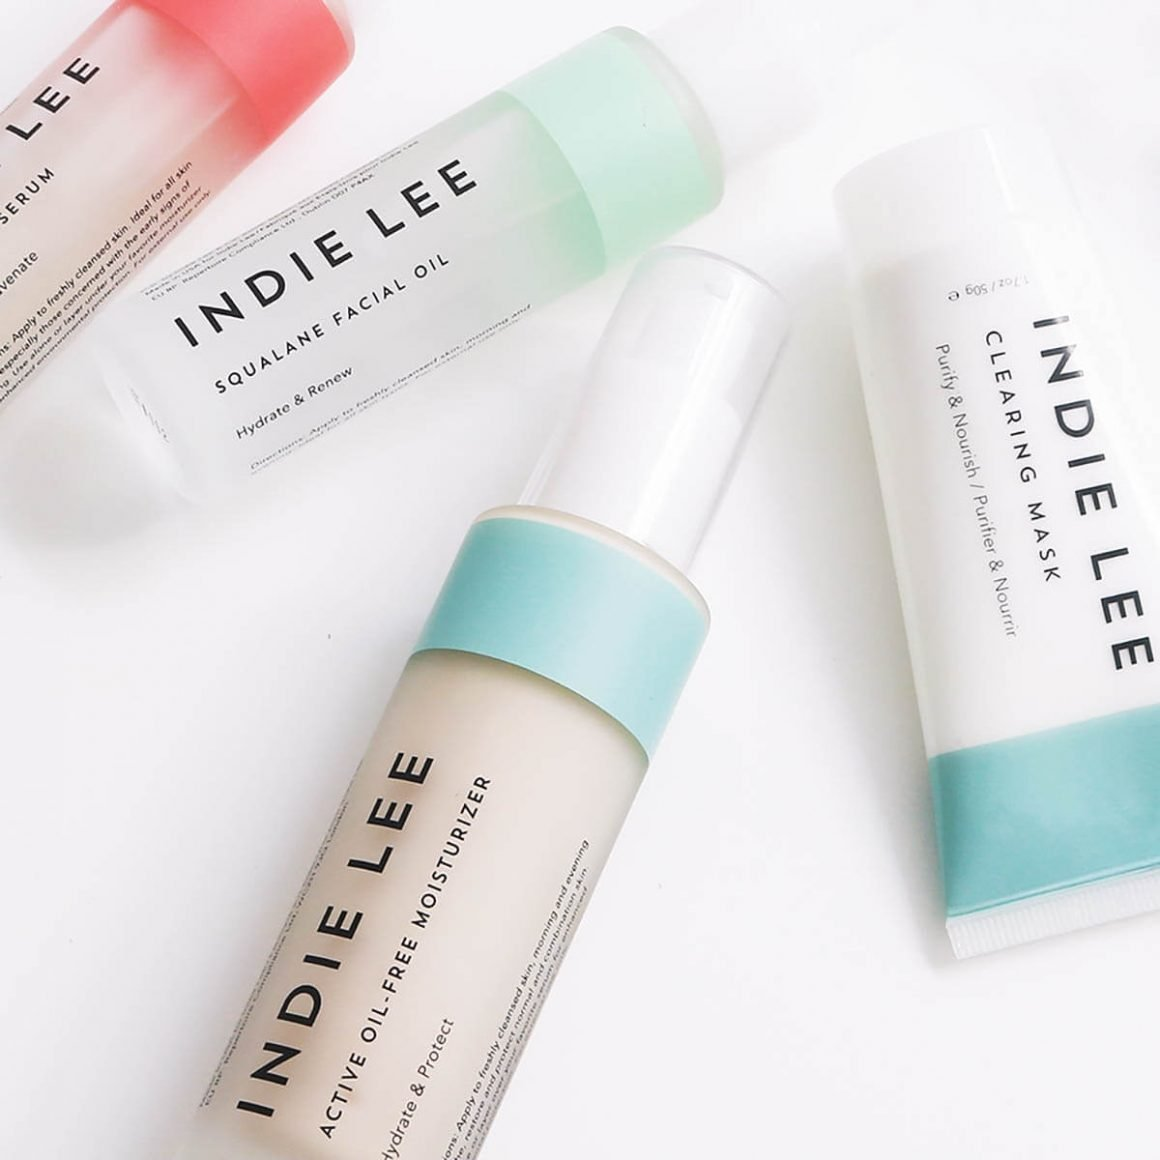 Indie Lee Stem Cell Serum, Squalane Oil, Oil-Free Moisturizer, Clearing Mask